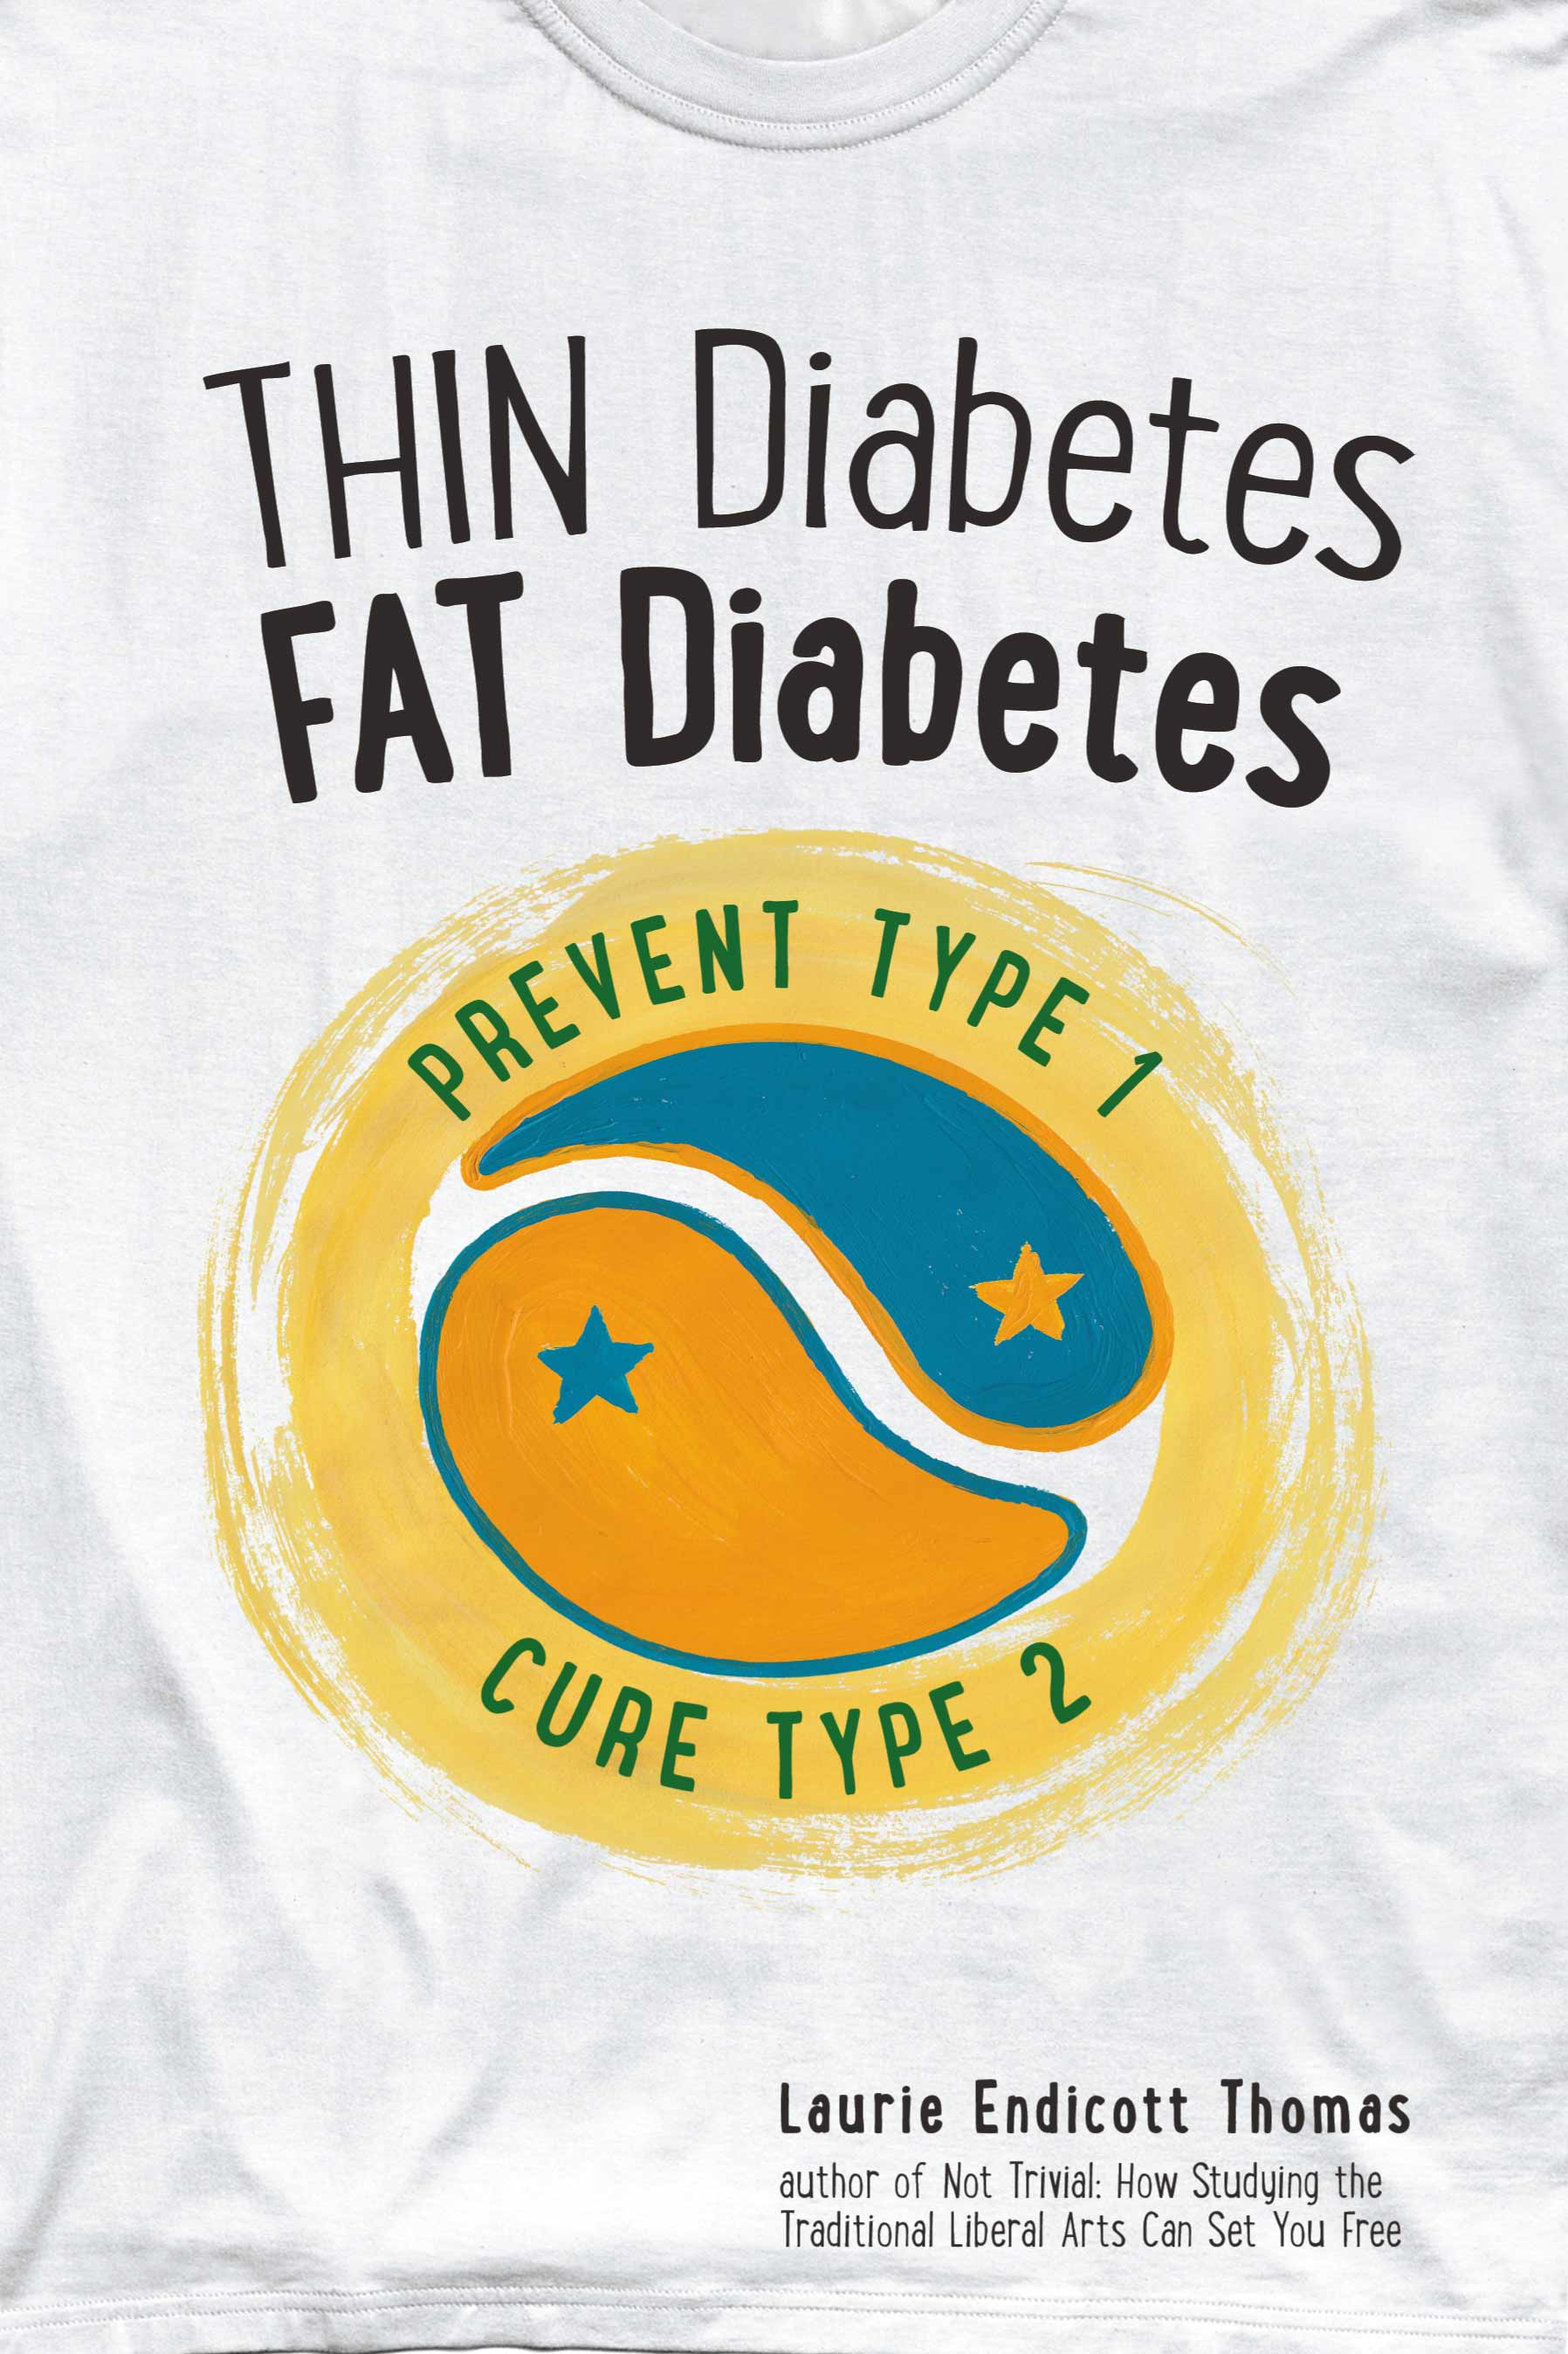 Thin Diabetes Fat Diabetes Prevent Type 1 Cure Type 2